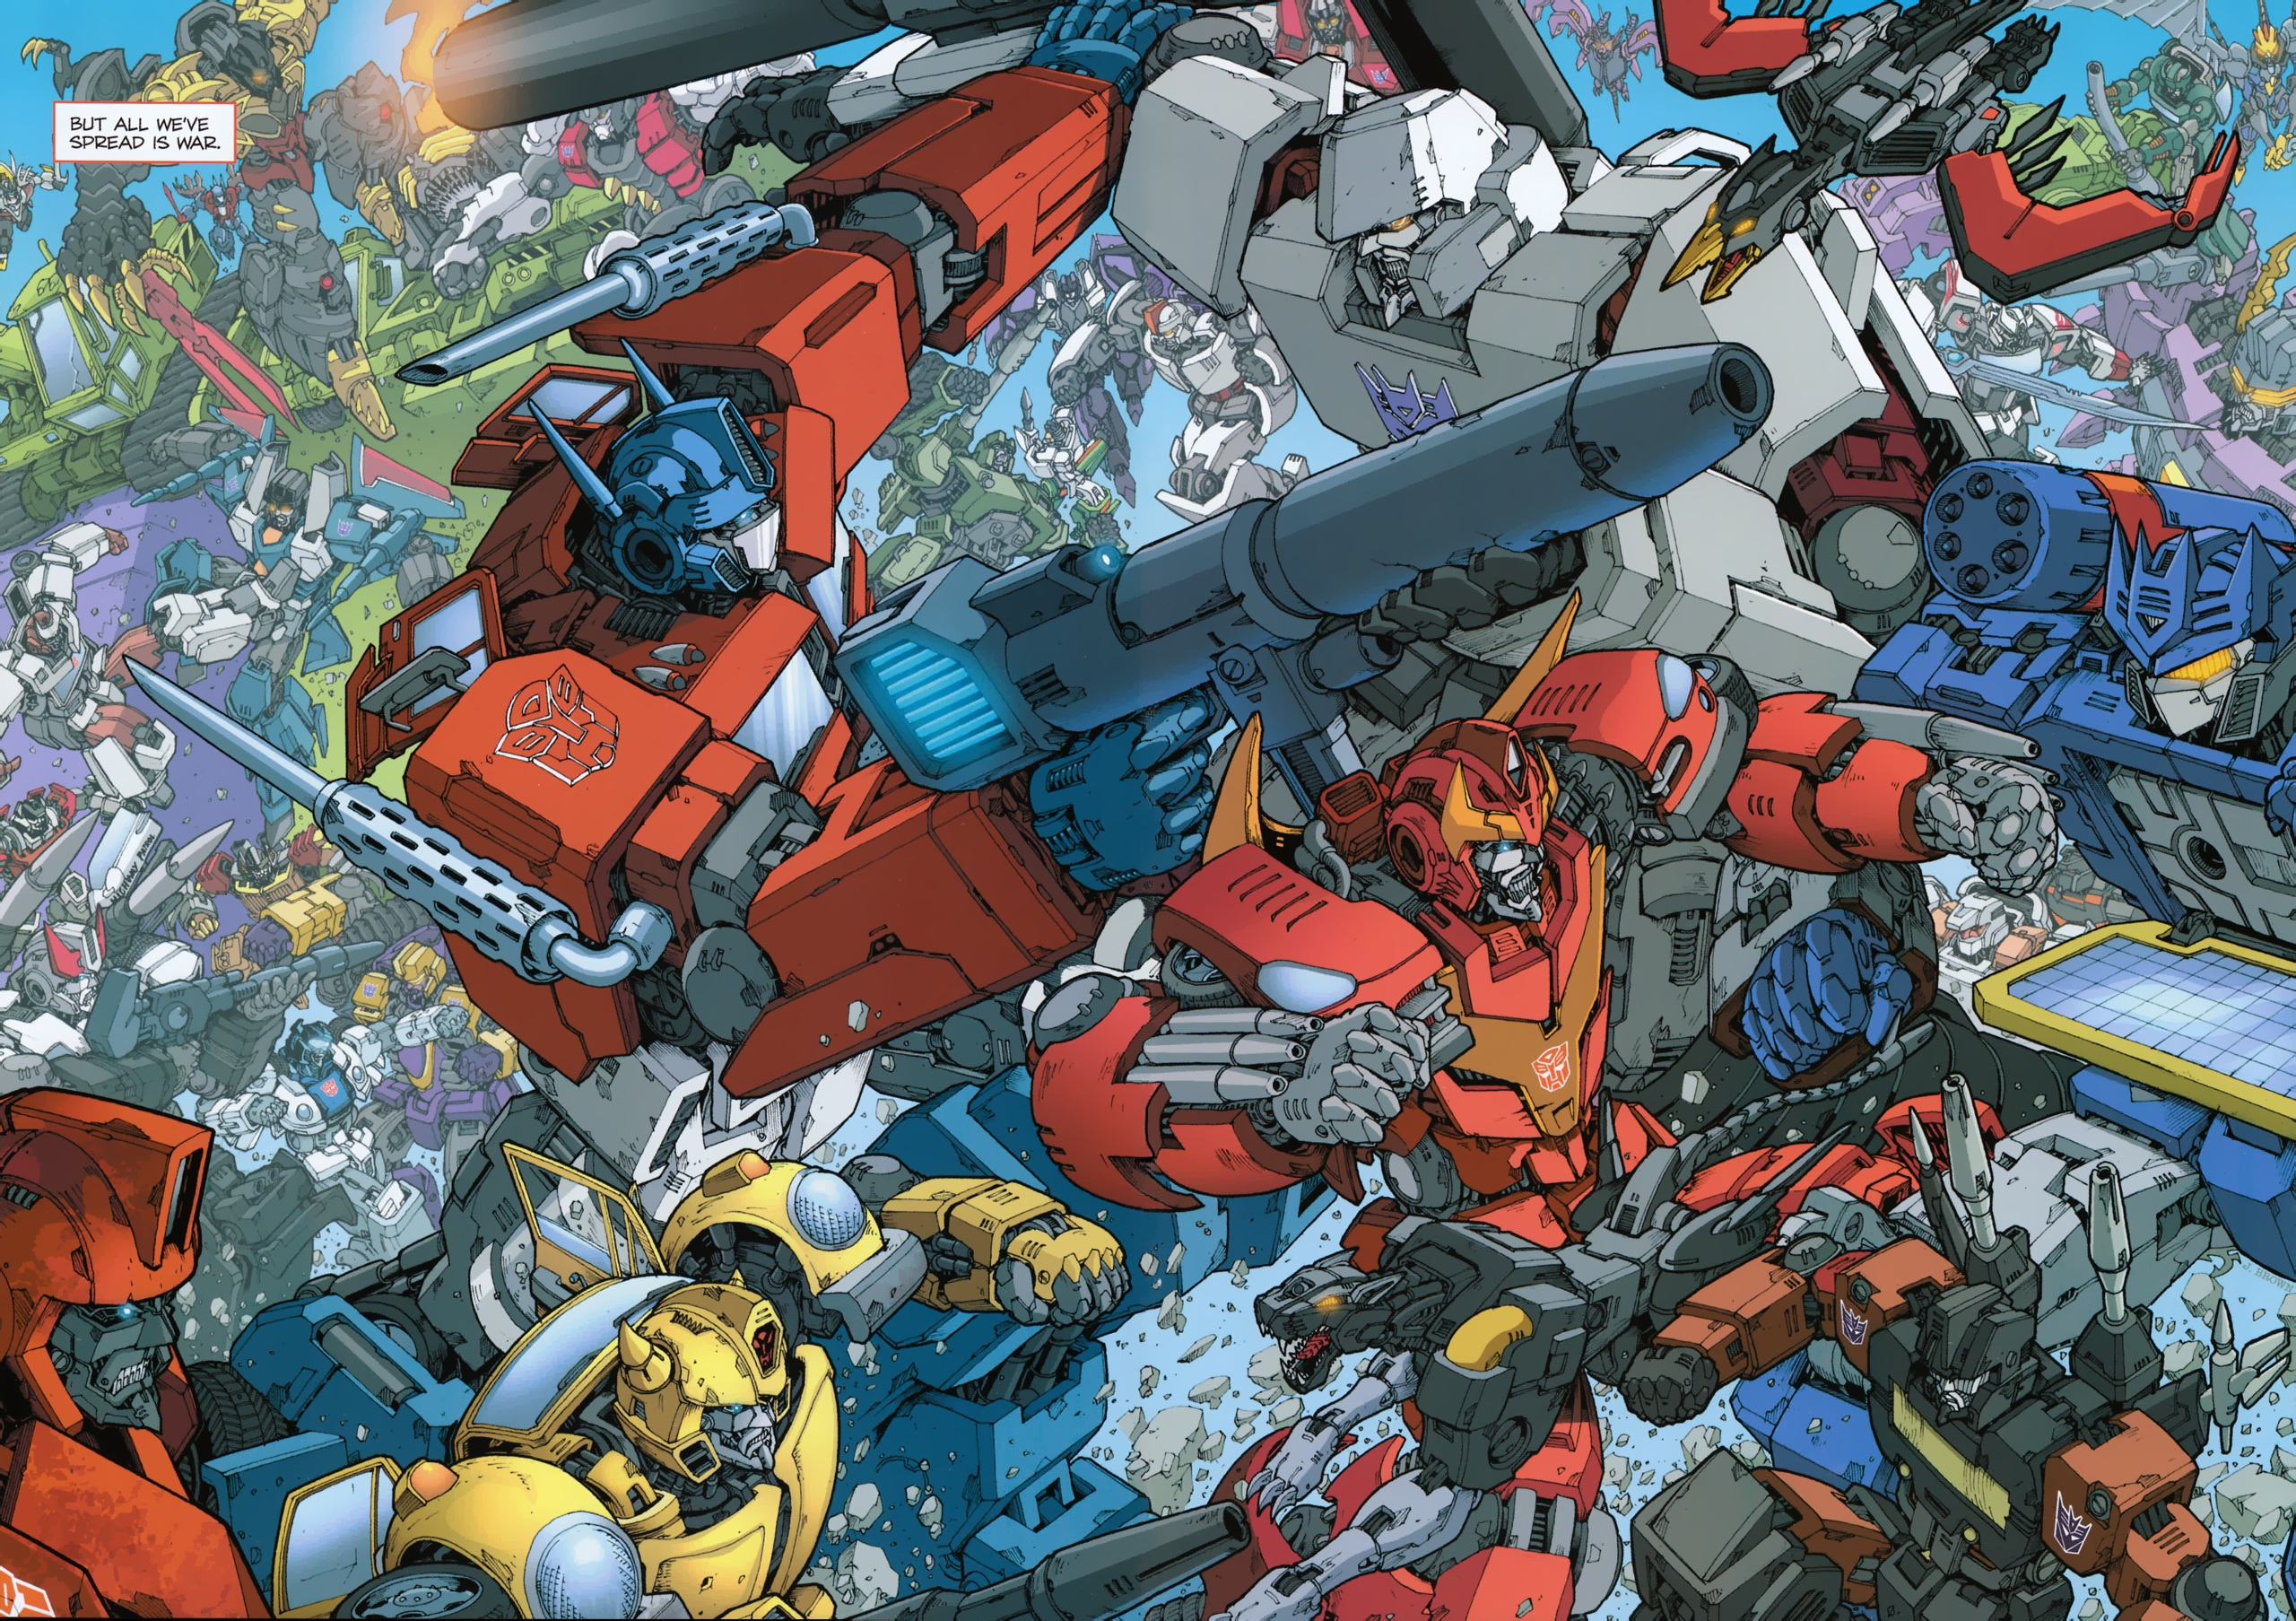 transformers 2010 panel new comic inside cover issue high resolution 2560x1807